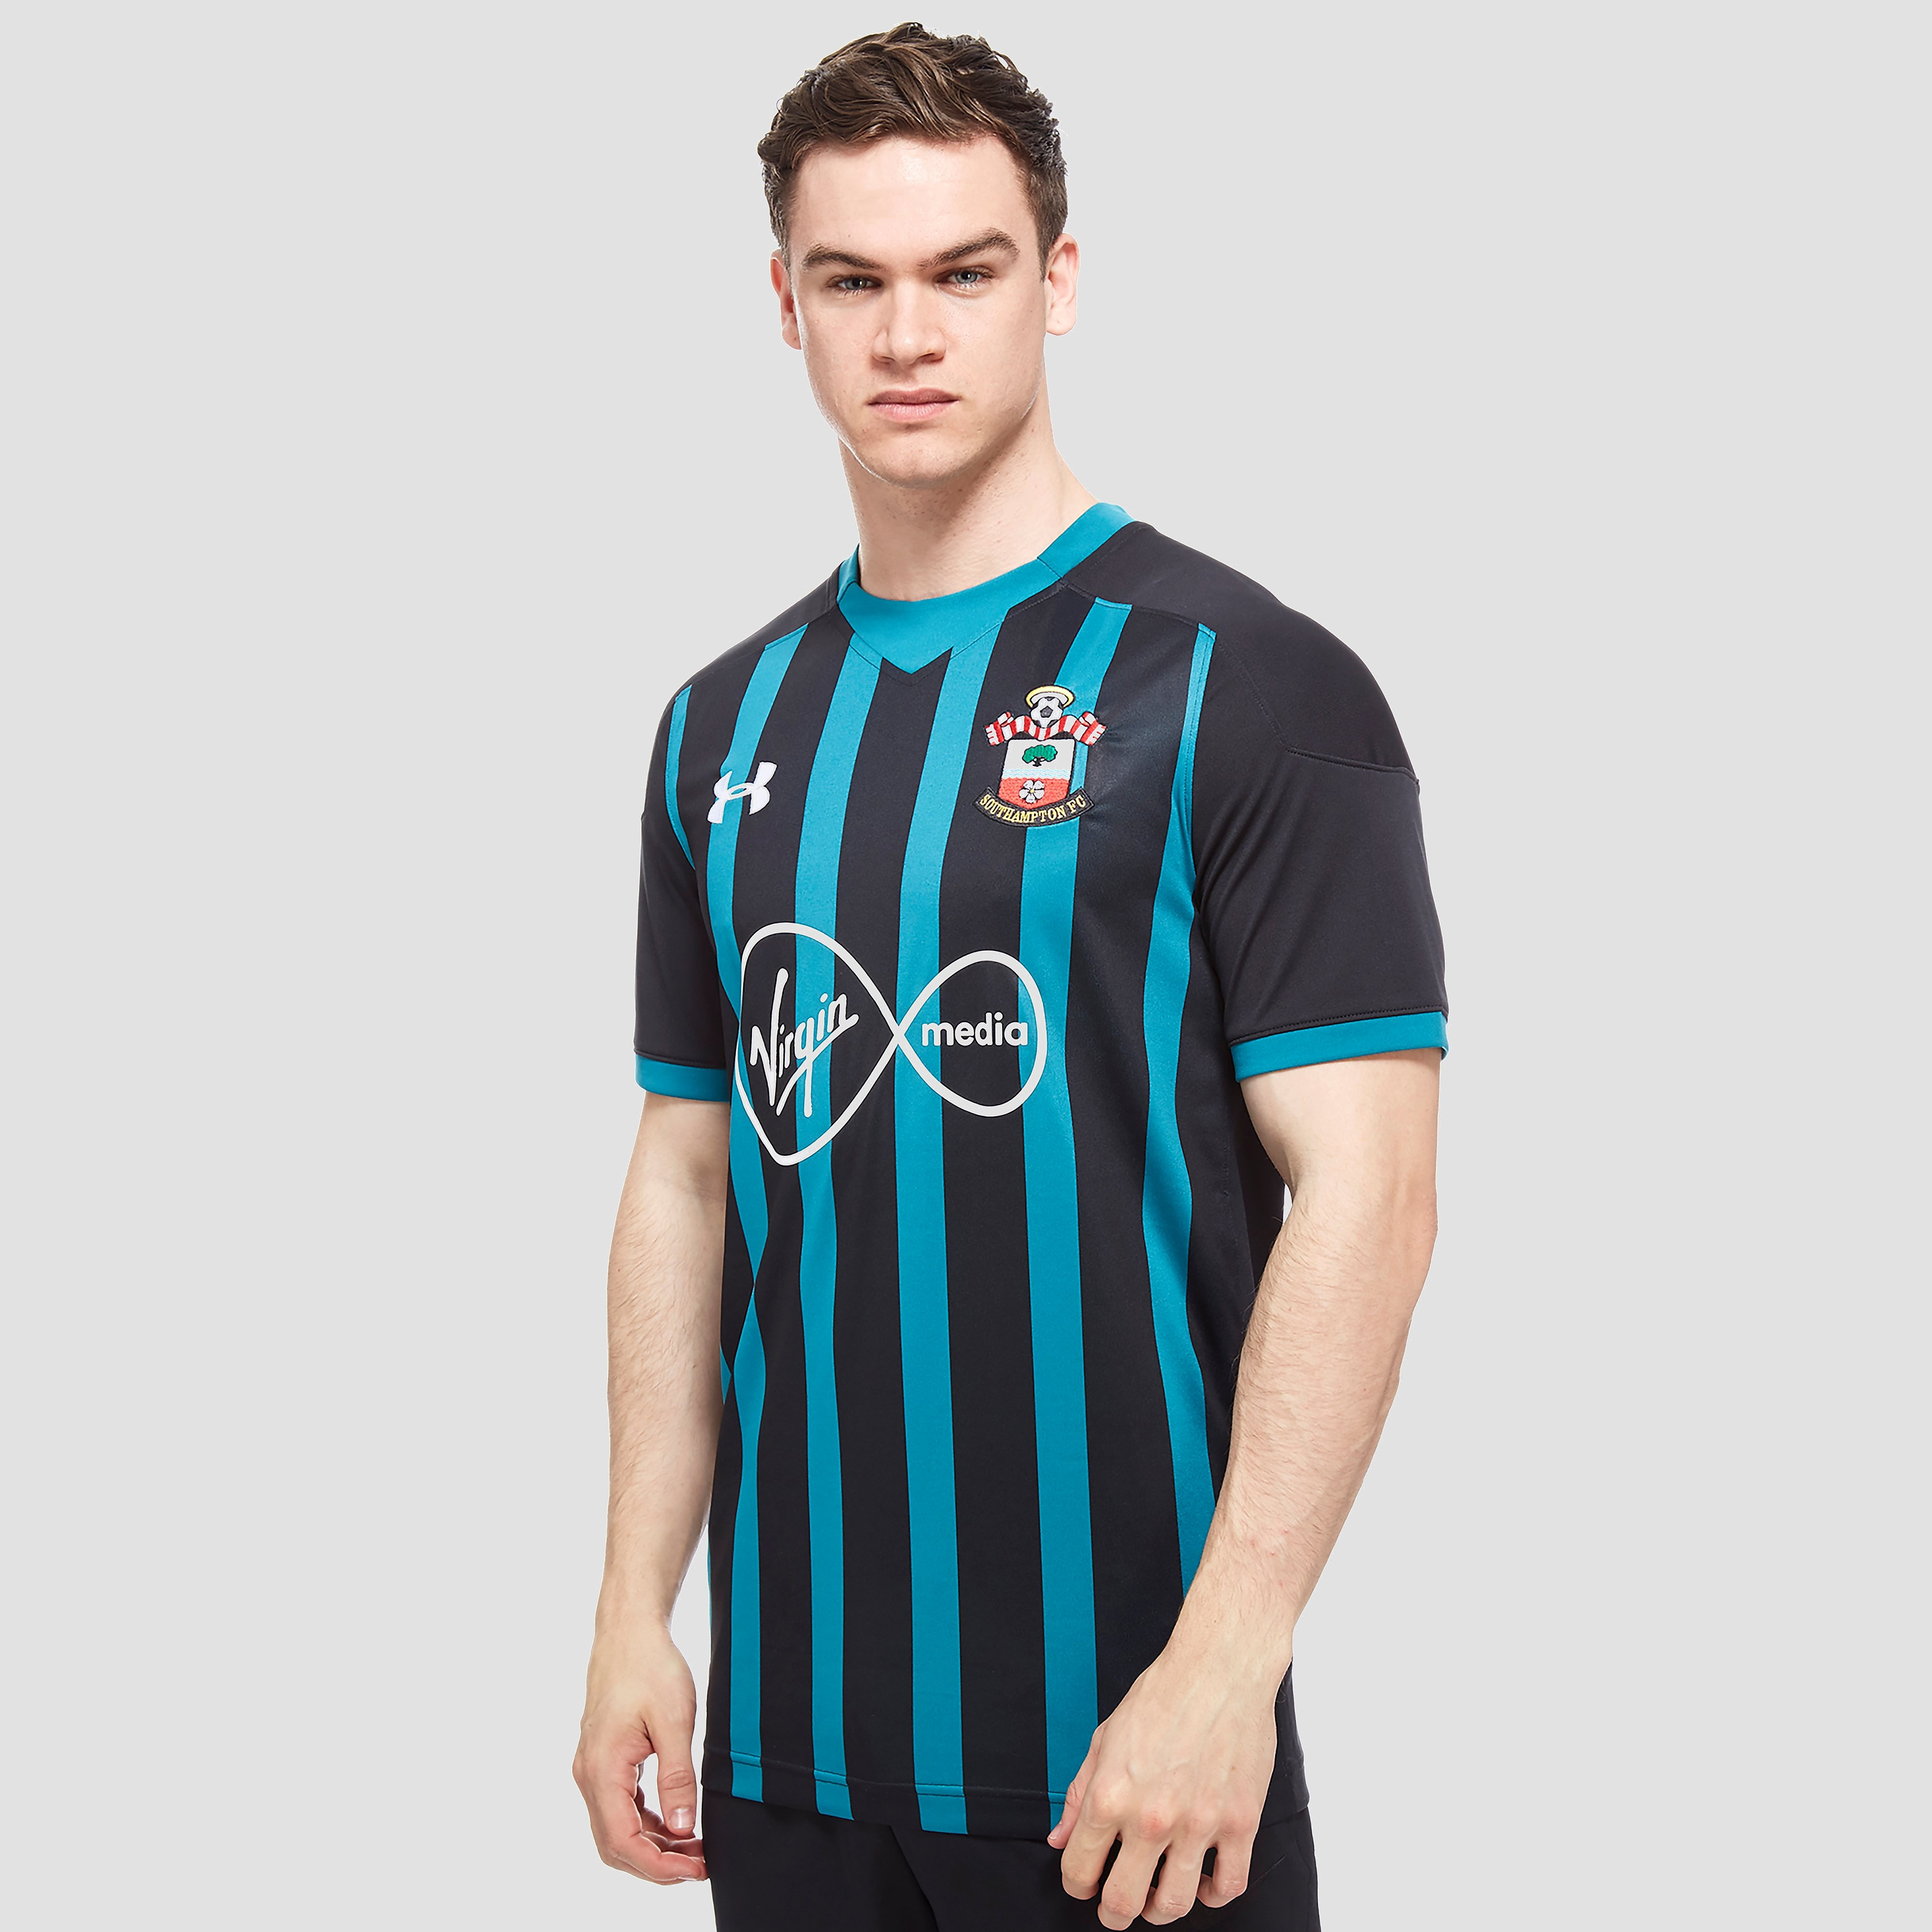 Under Armour Southampton FC 2017/18 Away Men's Football Shirt